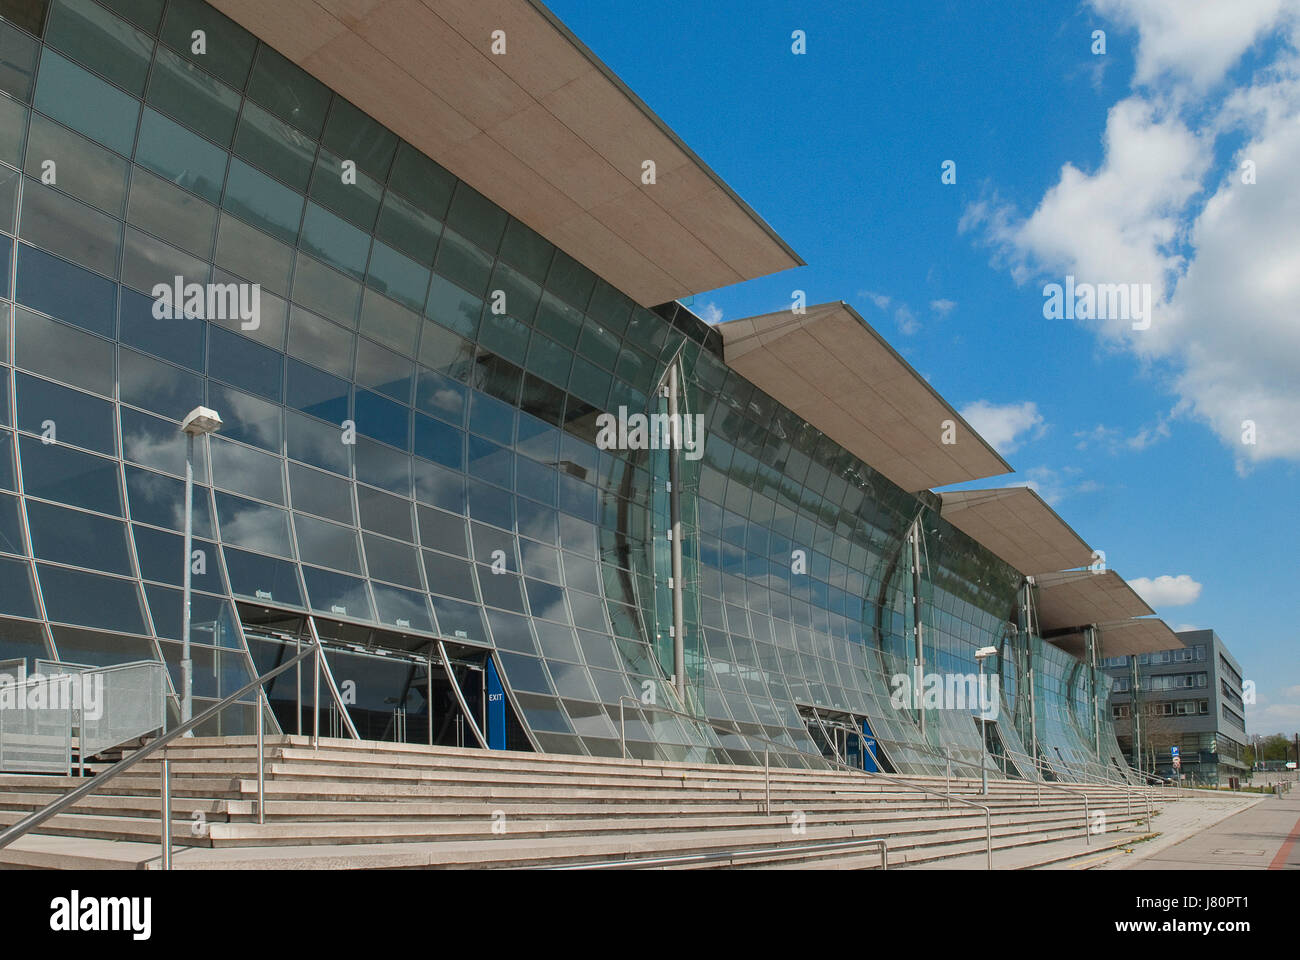 Expo Plaza Hannover Expo Plaza Hannover Expo 2000 Stock Photo 142618113 Alamy